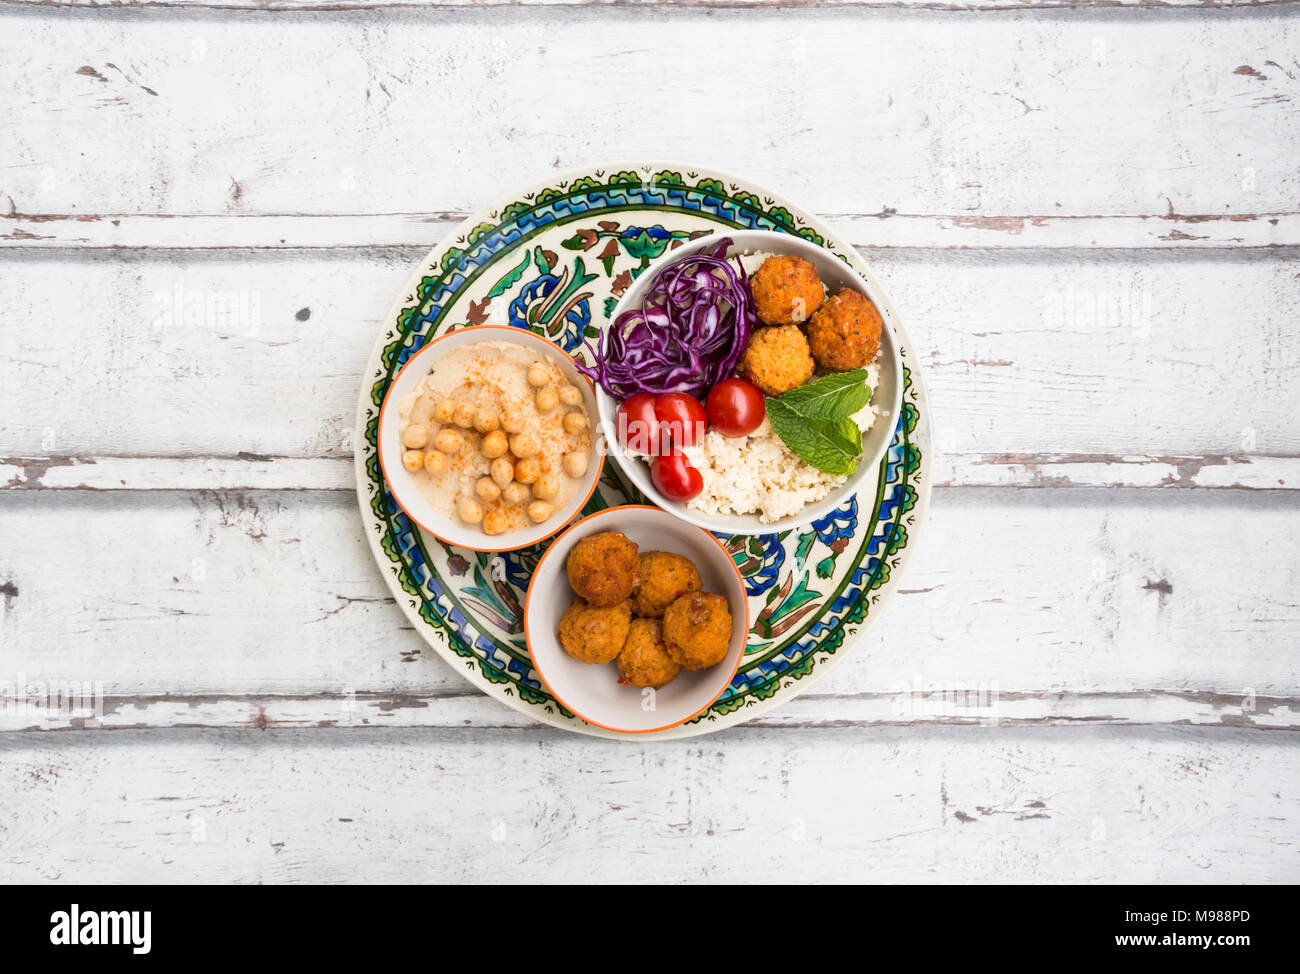 Sweet potato balls, Couscous, Hummus and vegetables in bowls Stock Photo